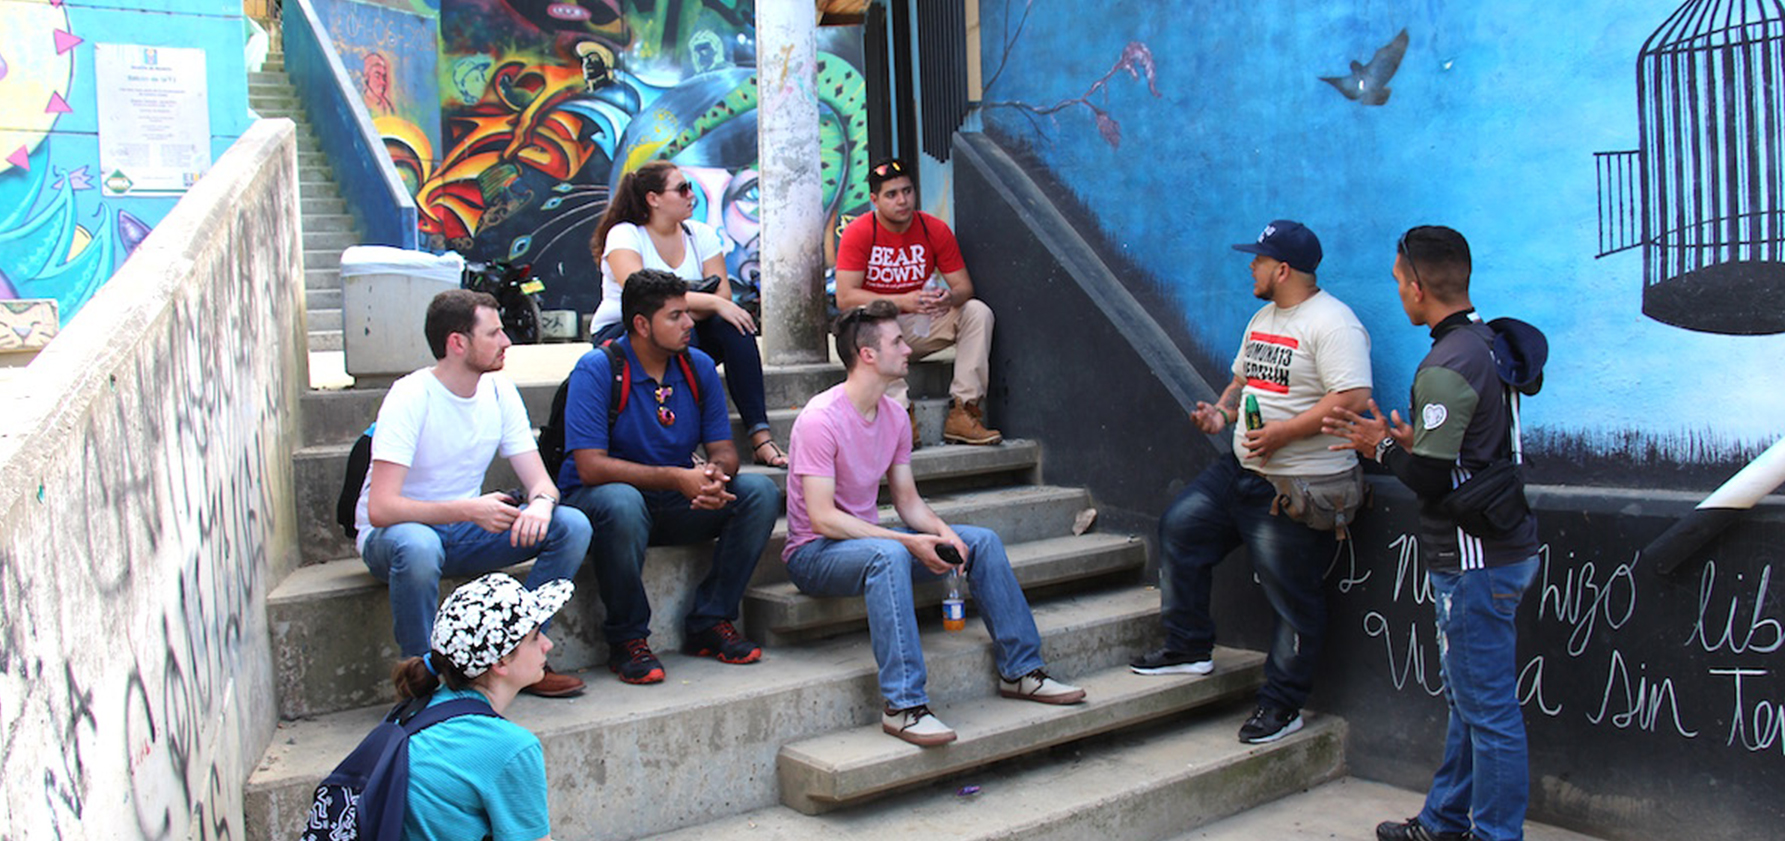 Ciro, a Colombian rapper, tour guide, and neighborhood activist giving the students a tour